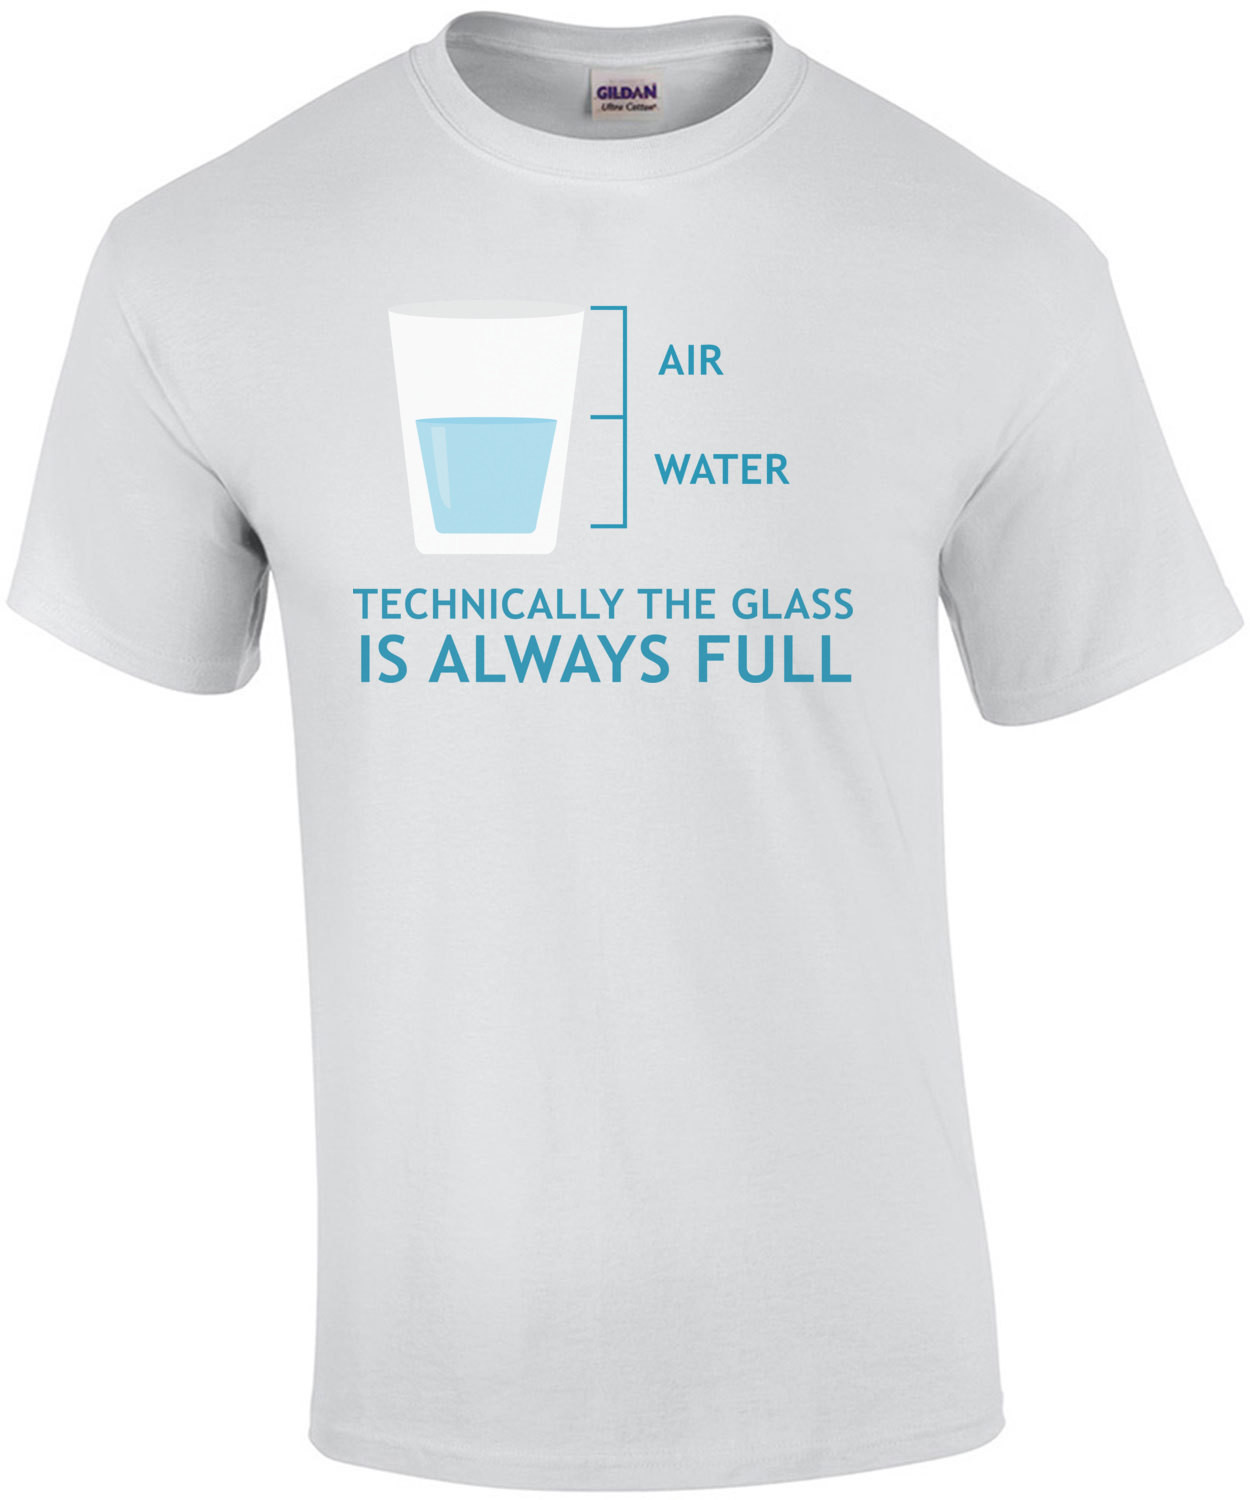 Technically the glass is always full - funny t-shirt